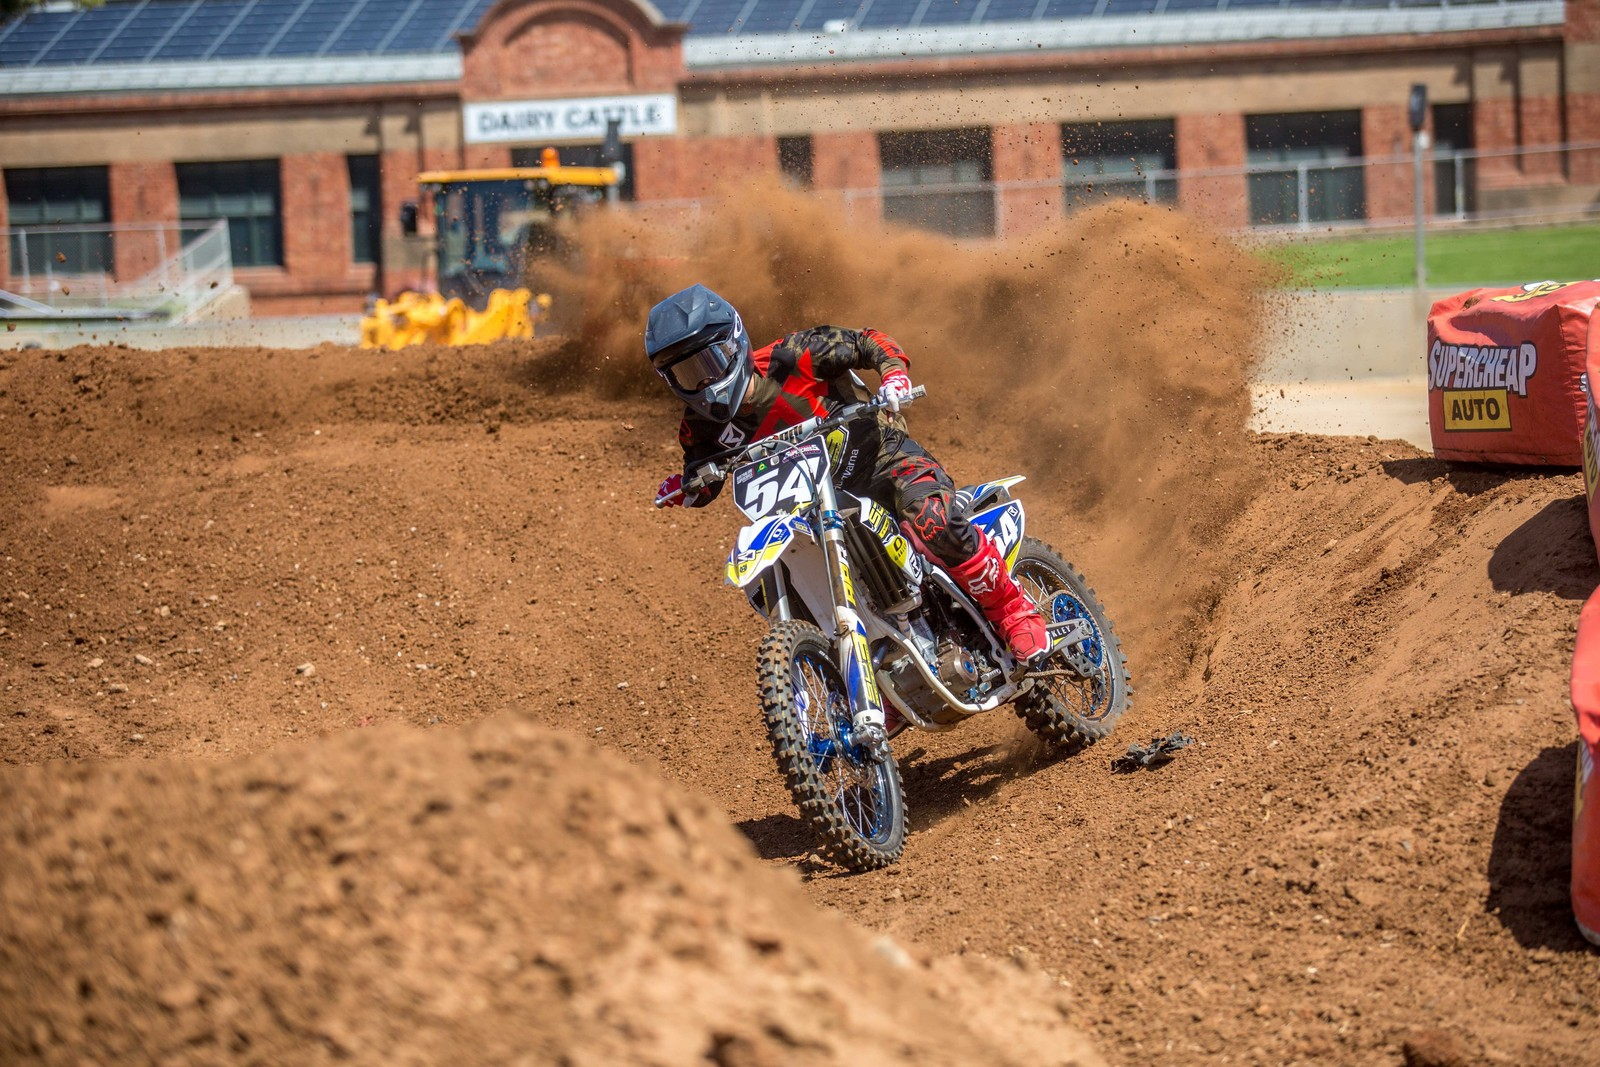 Luke Arbon - Photo Blast: Australian Supercross Championship from Adelaide - Motocross Pictures - Vital MX